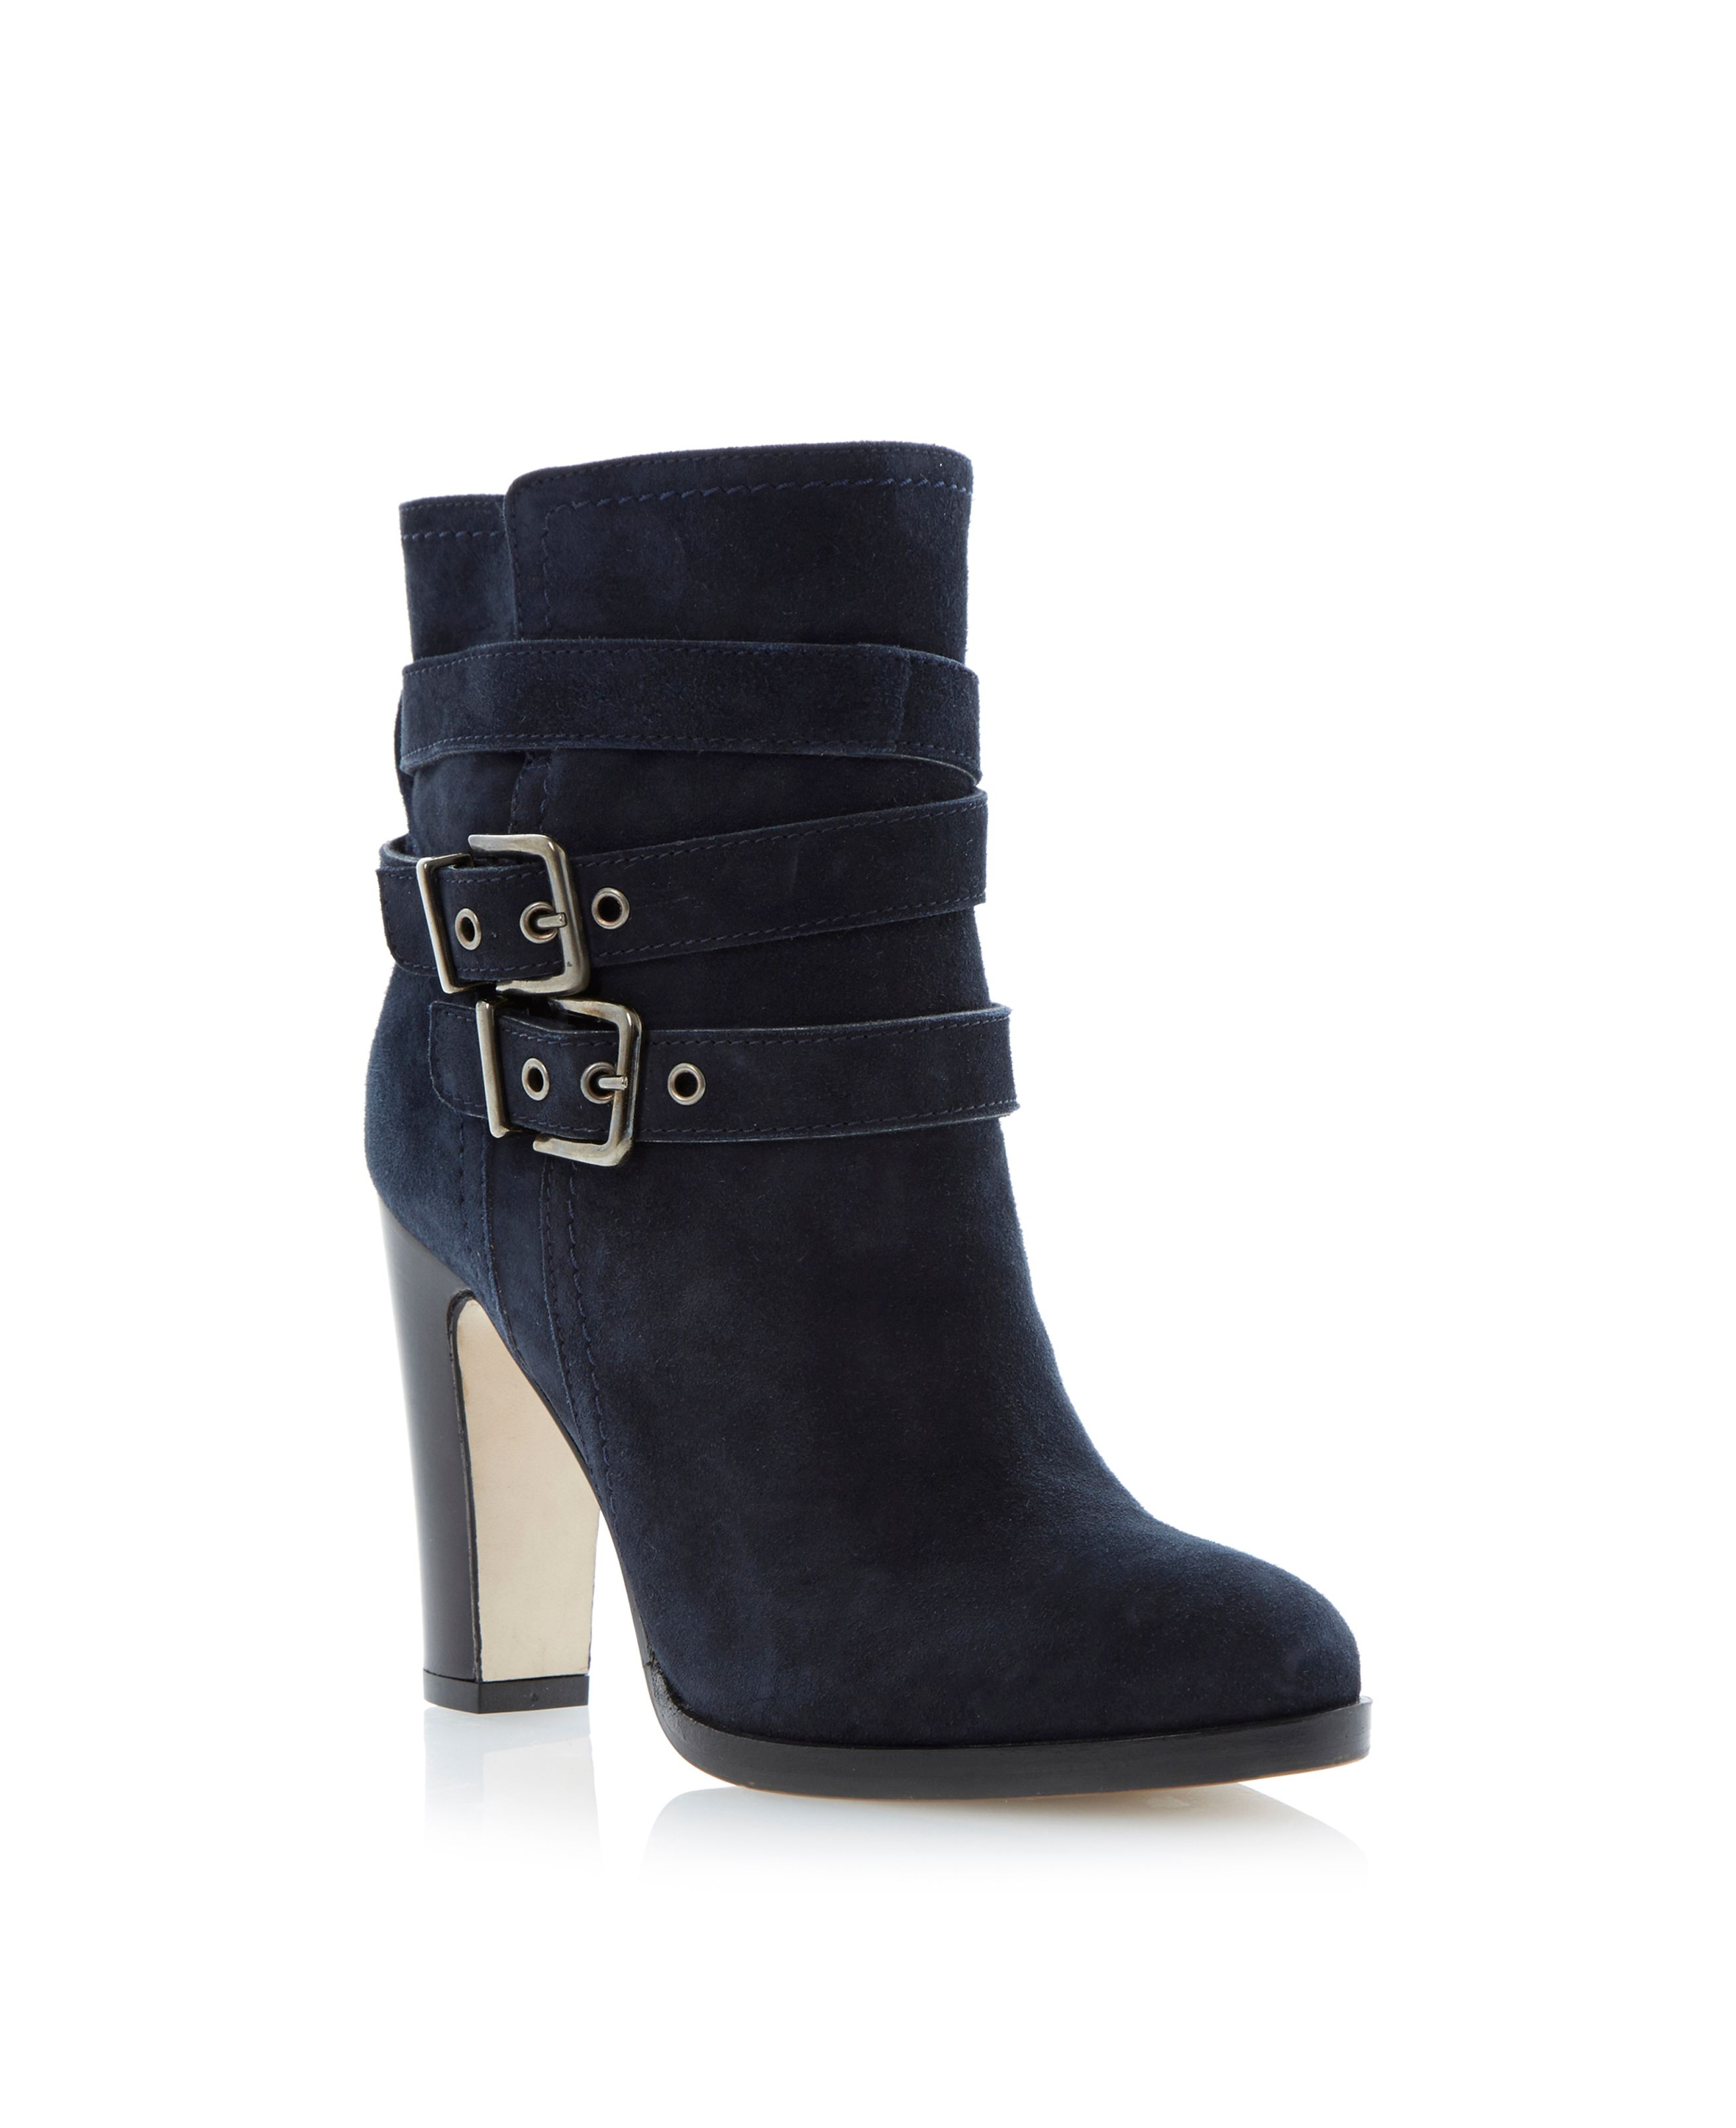 Panto suede almond toe stacked heel ankle boots